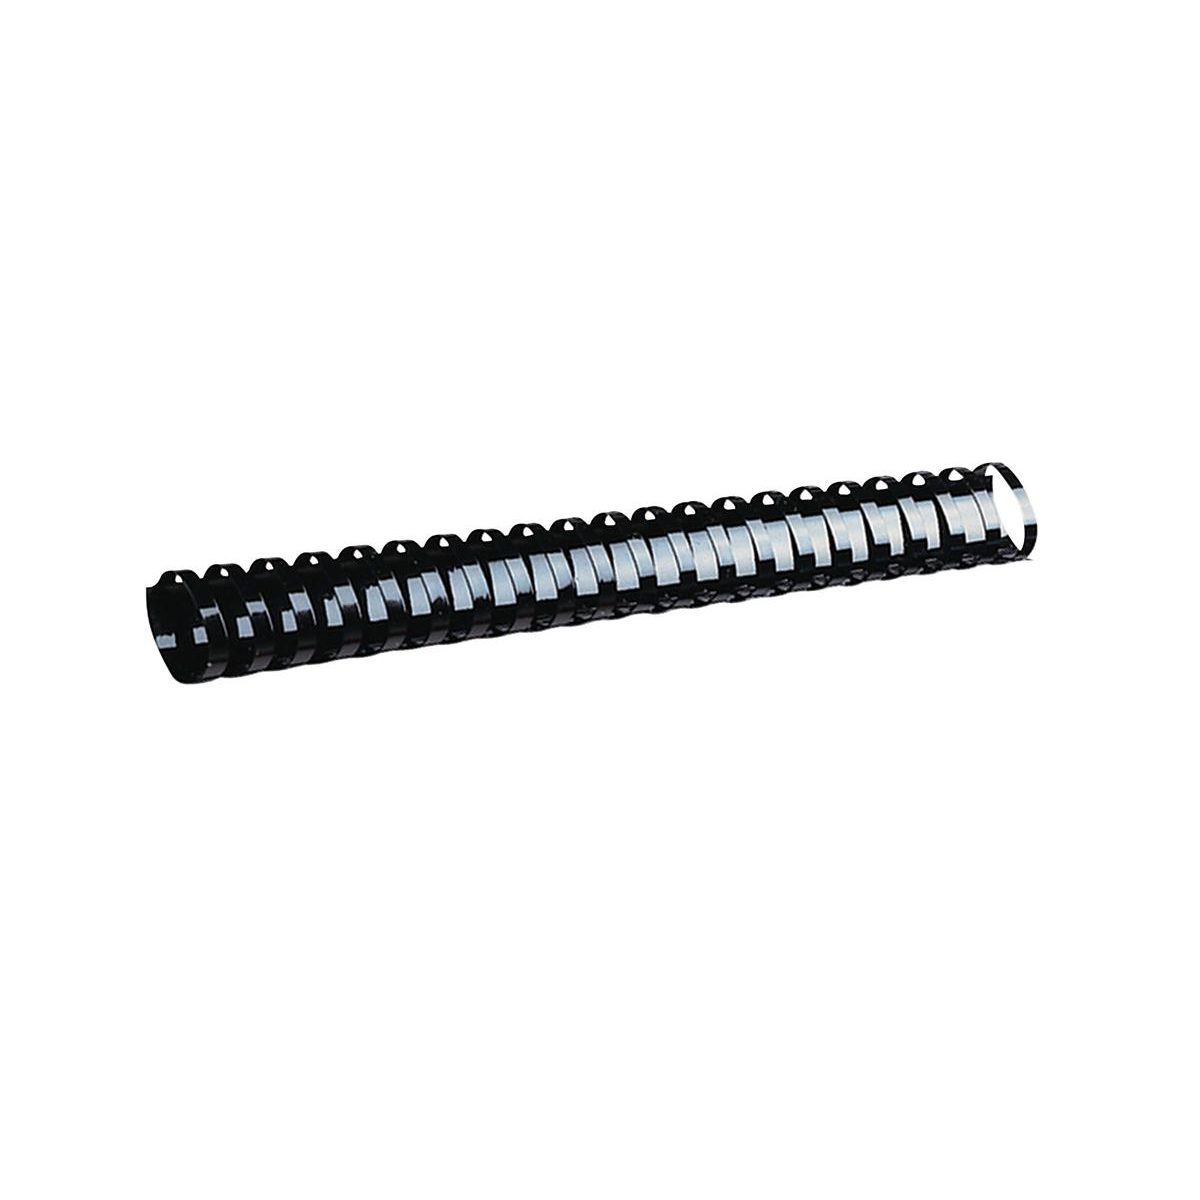 Binding Combs GBC Binding Combs Plastic 21 Ring 165 Sheets A4 19mm Black Ref 4028601 Pack 100